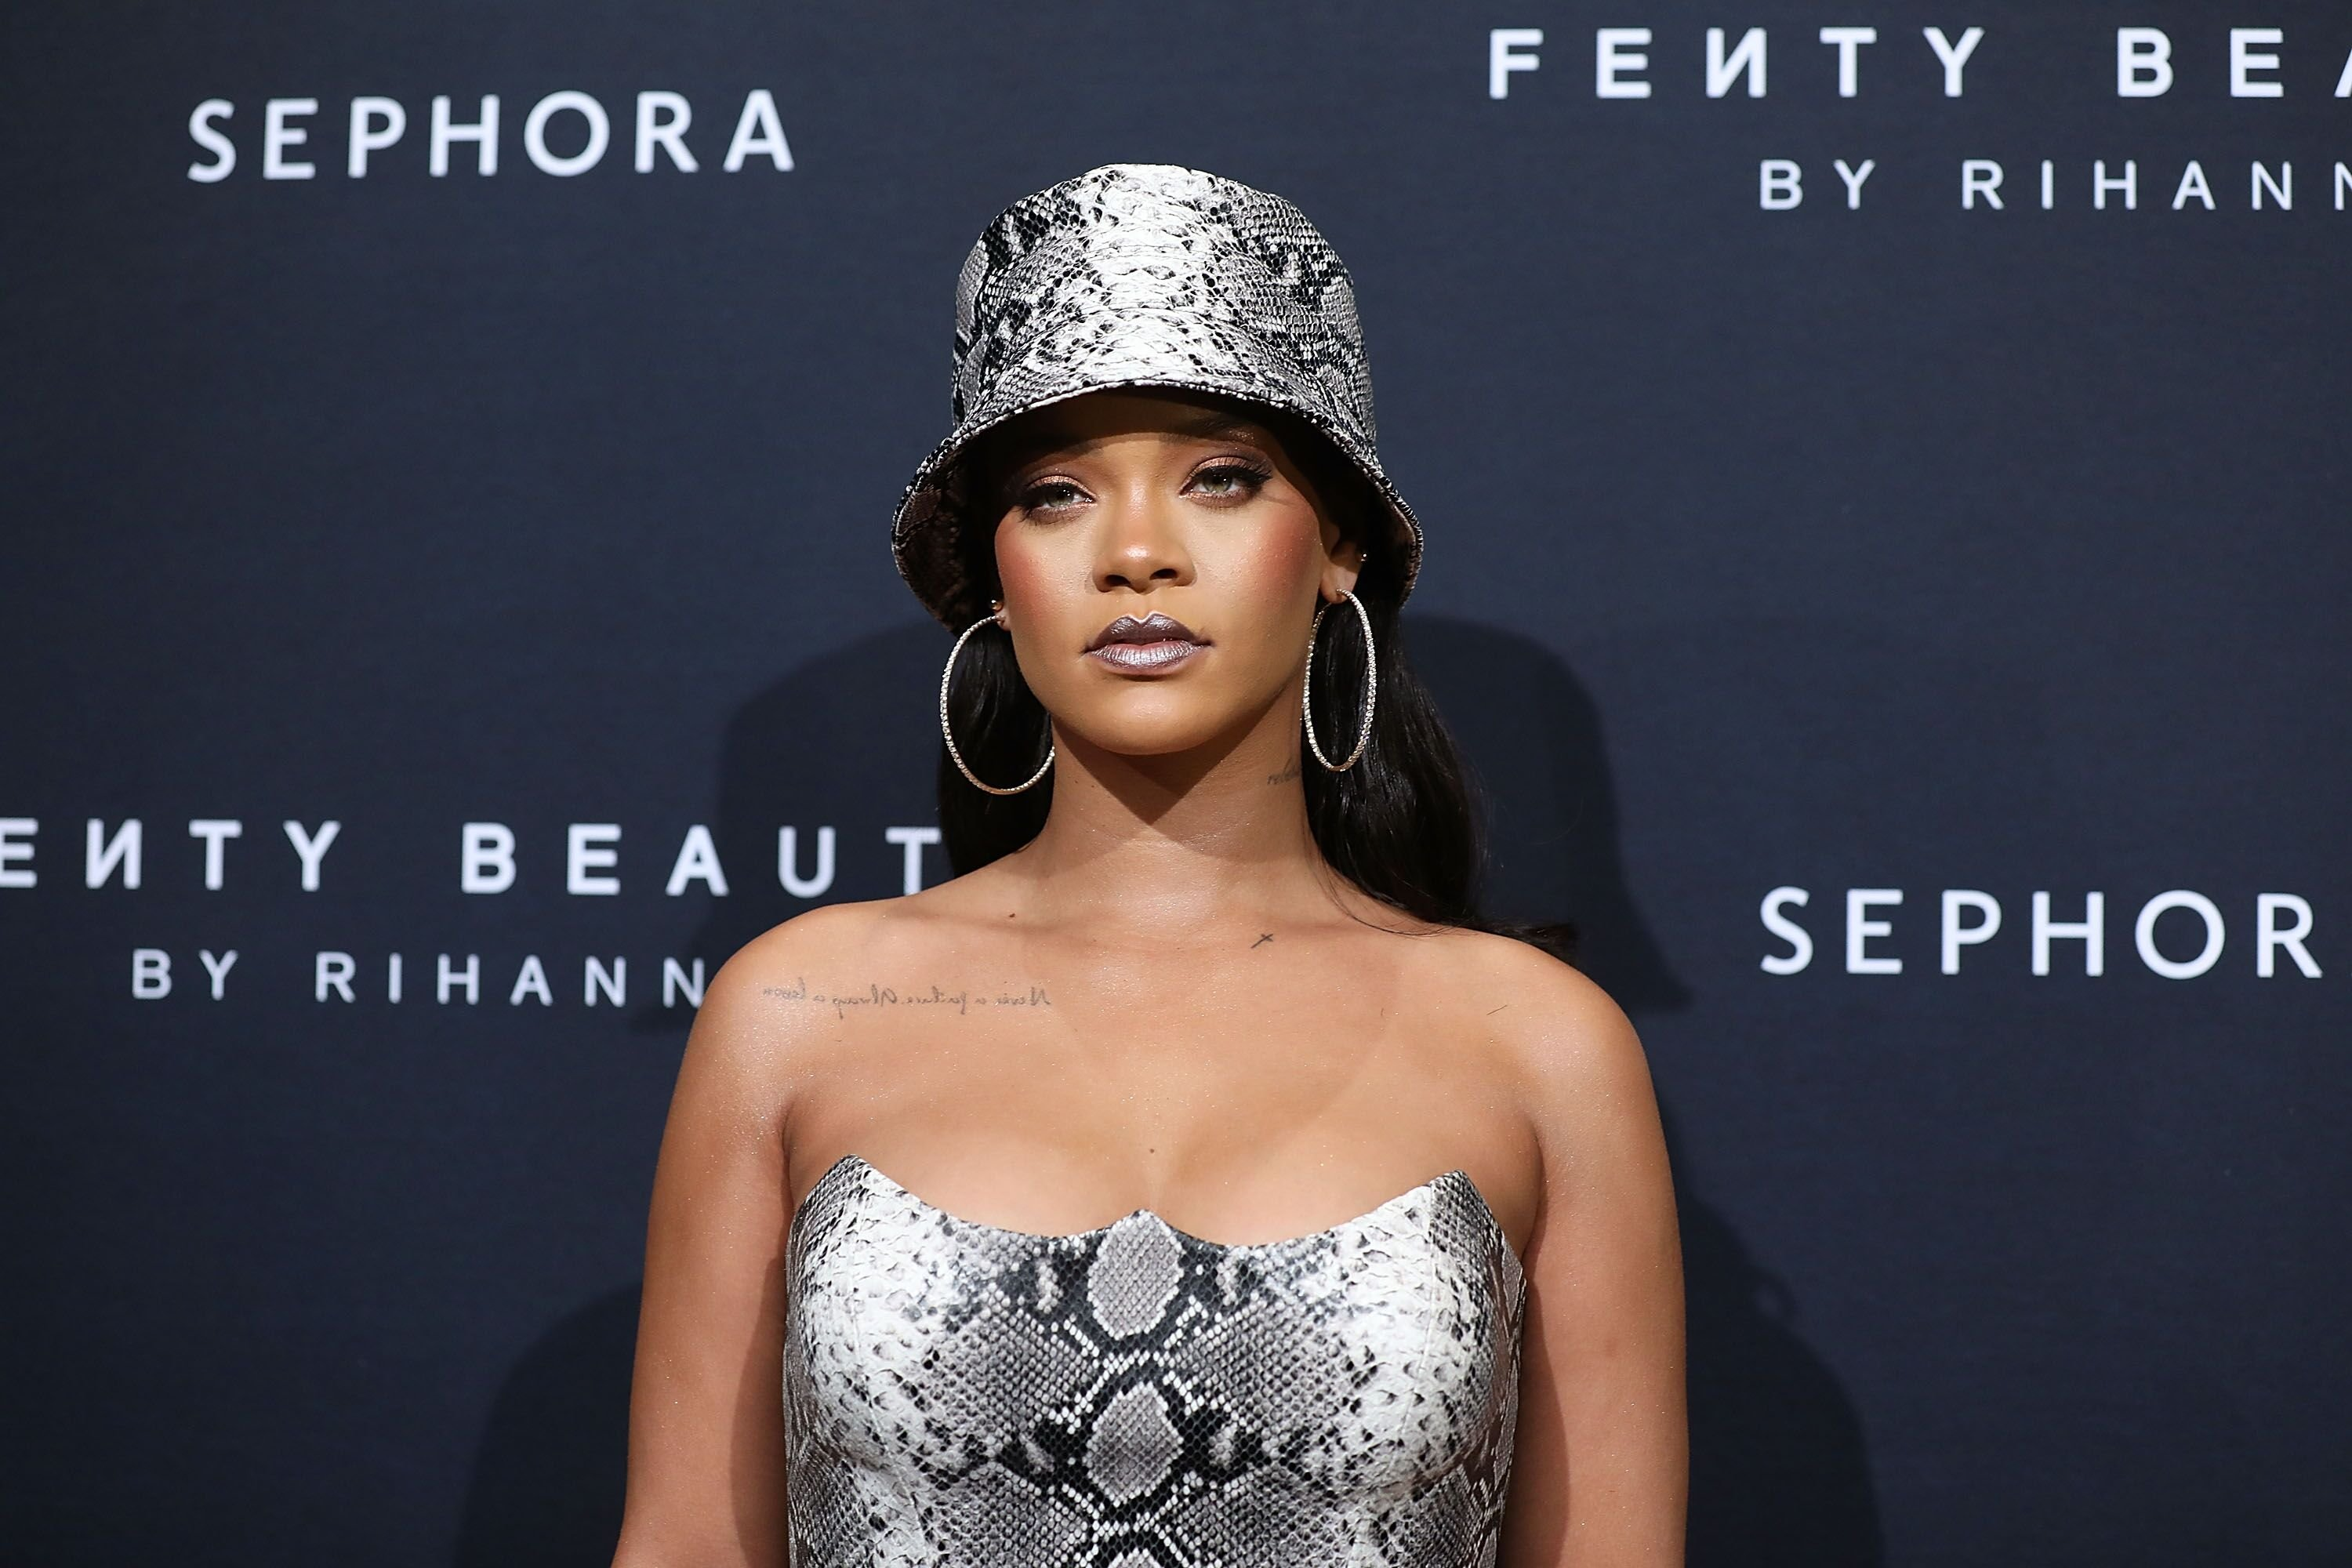 Rihanna at the Fenty Beauty by Rihanna Anniversary Event in Sydney, Australia on October 3, 2018   Photo: Getty Images